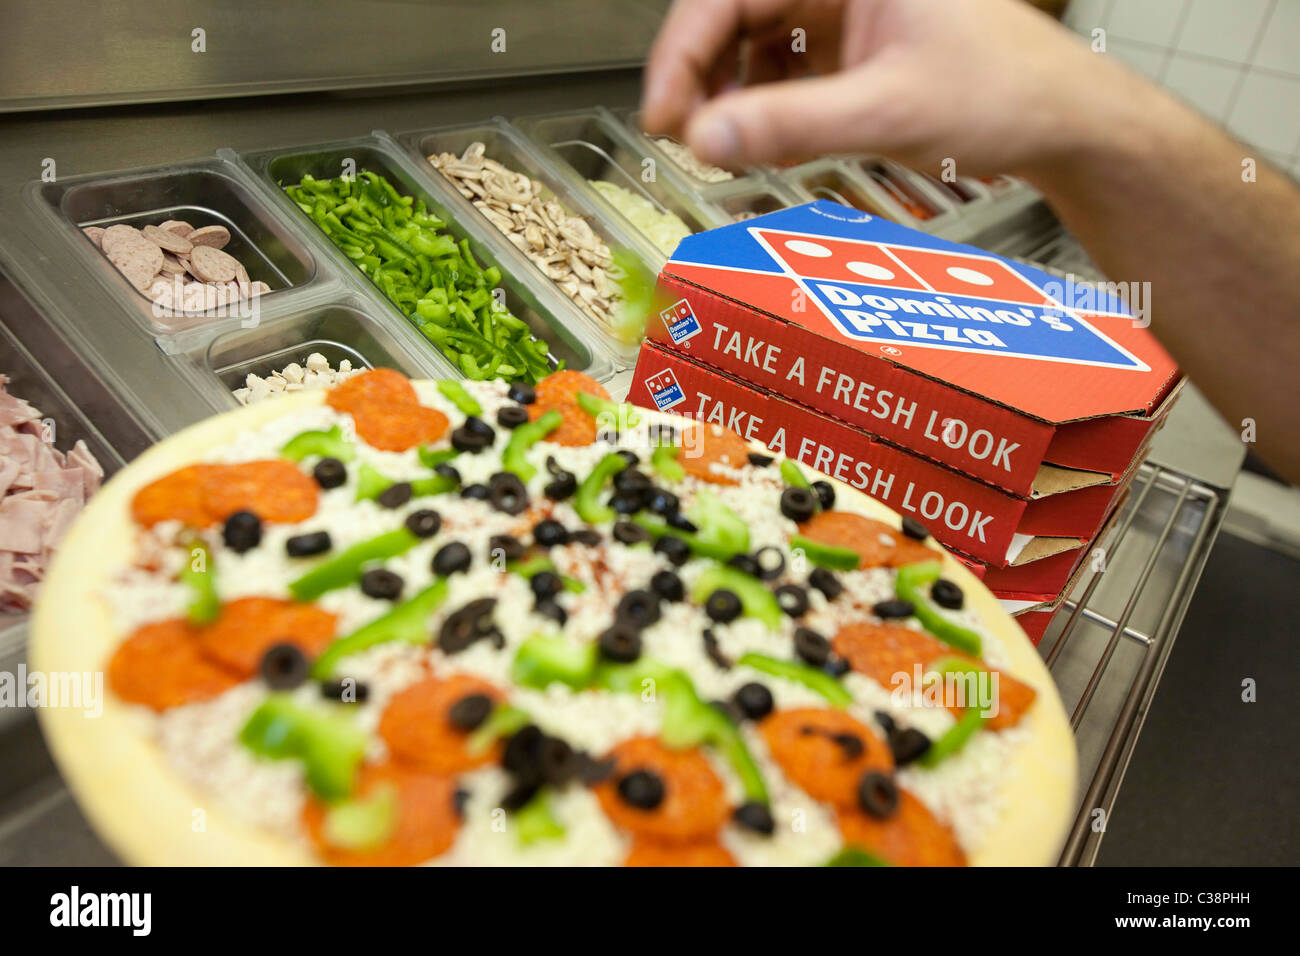 A Domino's Pizza employee preparing a fresh pizza ready for the cooking oven. - Stock Image